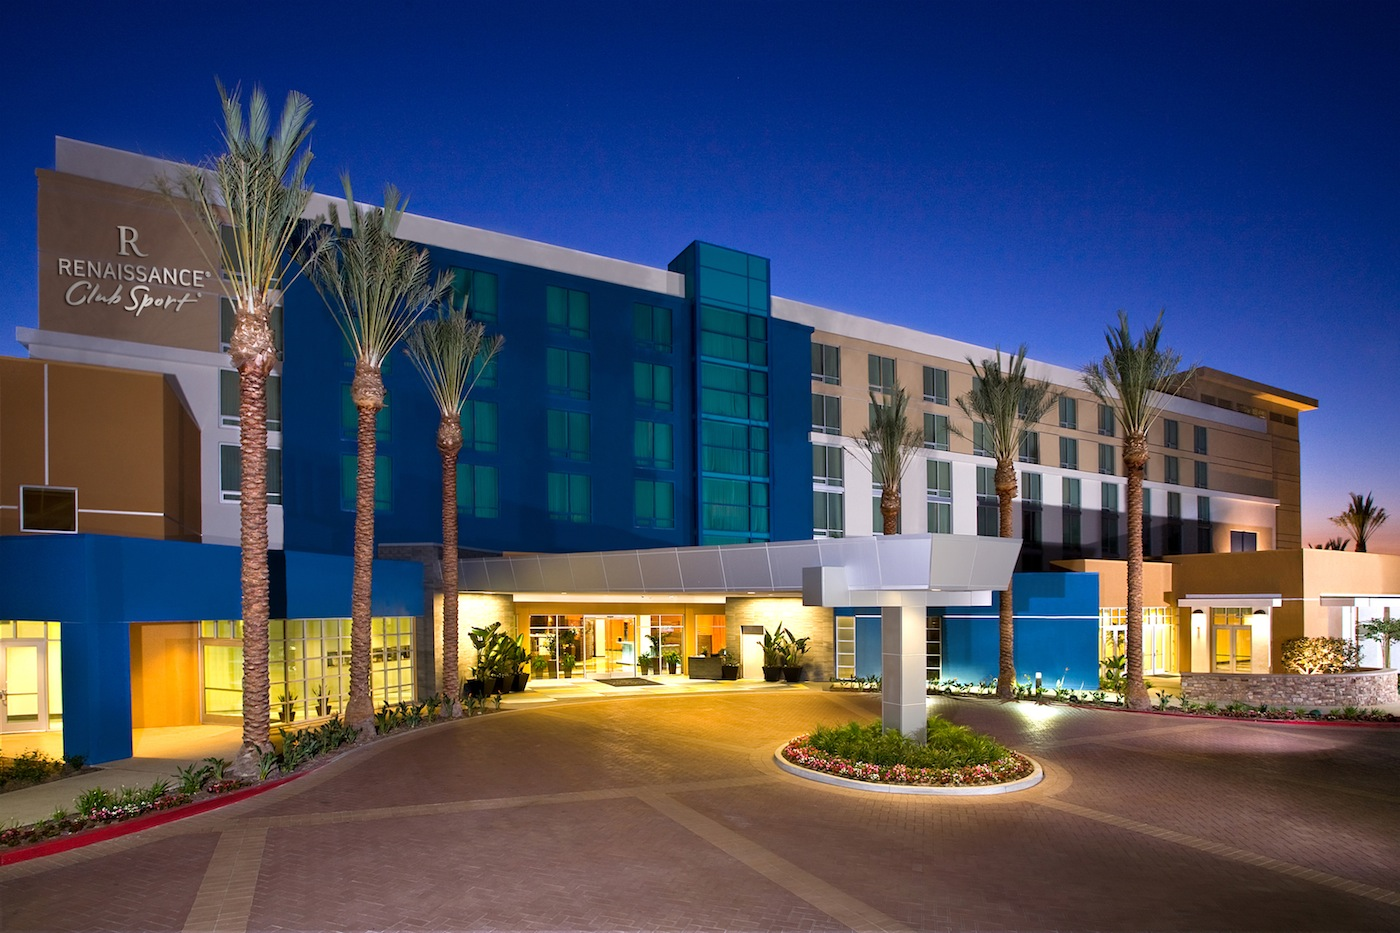 Exterior view of Renaissance ClubSport Aliso Viejo.